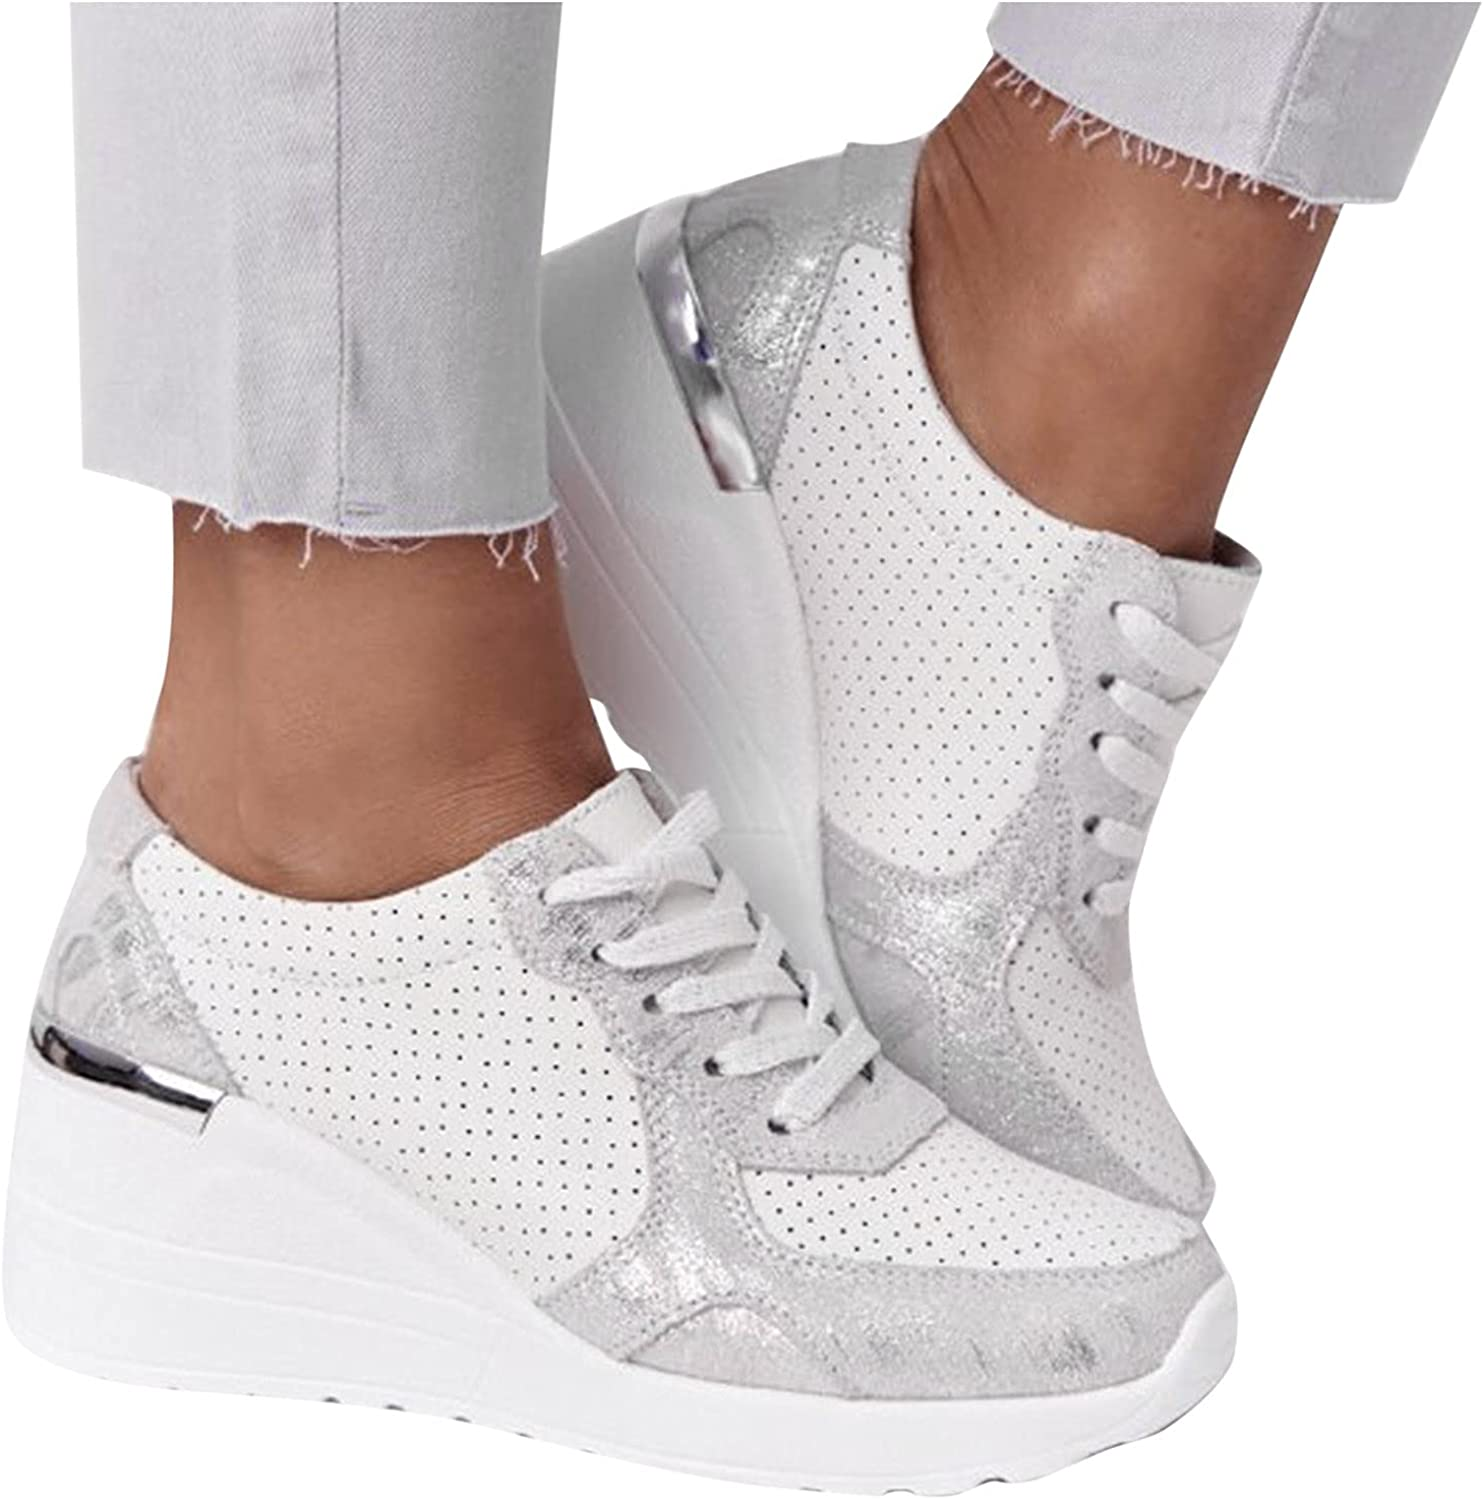 Niceast Sneakers for Women,Womens Hollow Wedge Shoes Breathable Fashion Slip on Walking Shoes